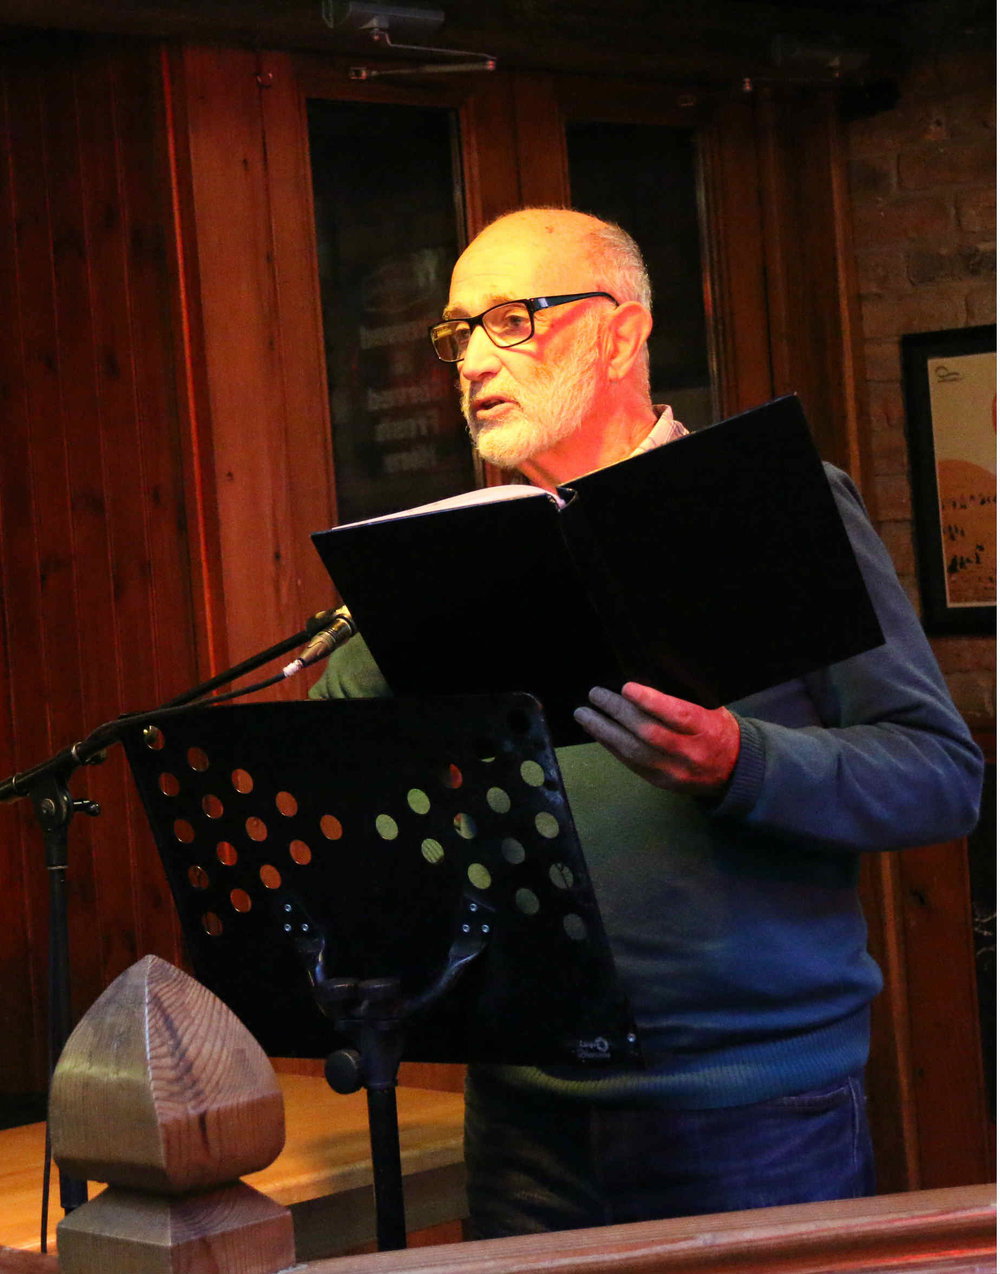 Poetry Reading with Mick Delap - Allingham Festival 2016, Ballyshannon-28.jpg